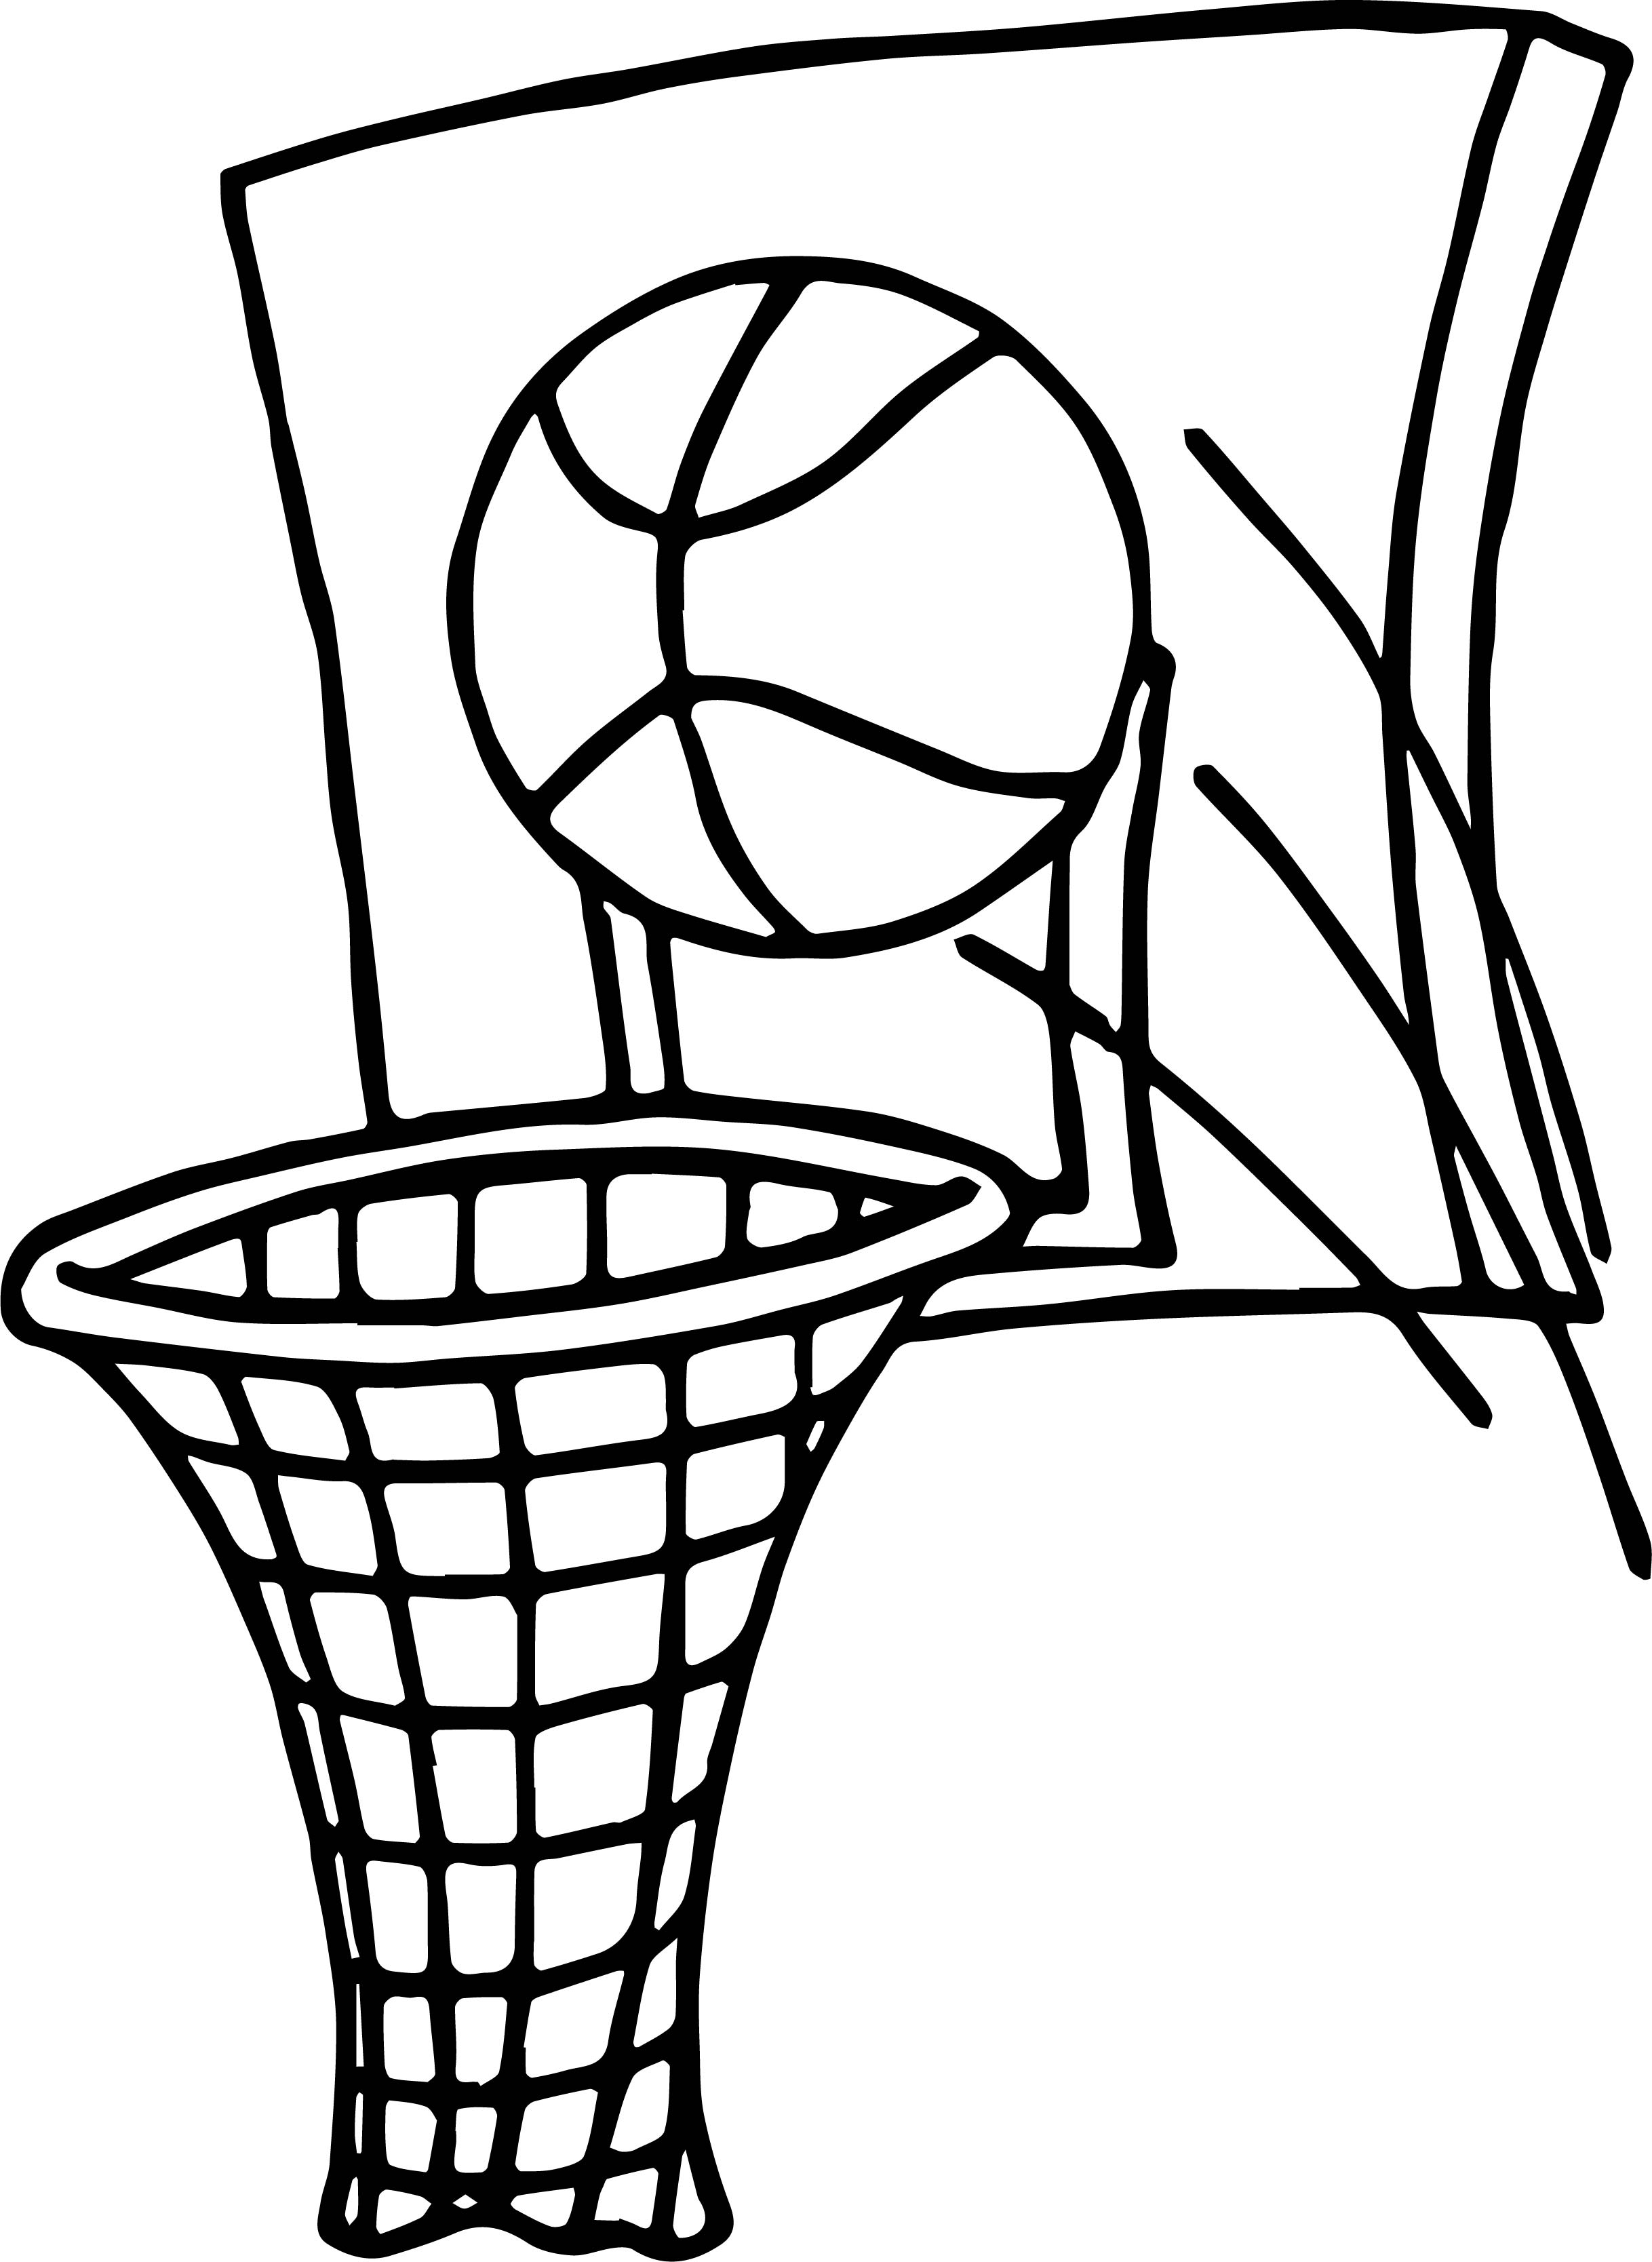 coloring pages basketball - Basketball Coloring Pages Boys